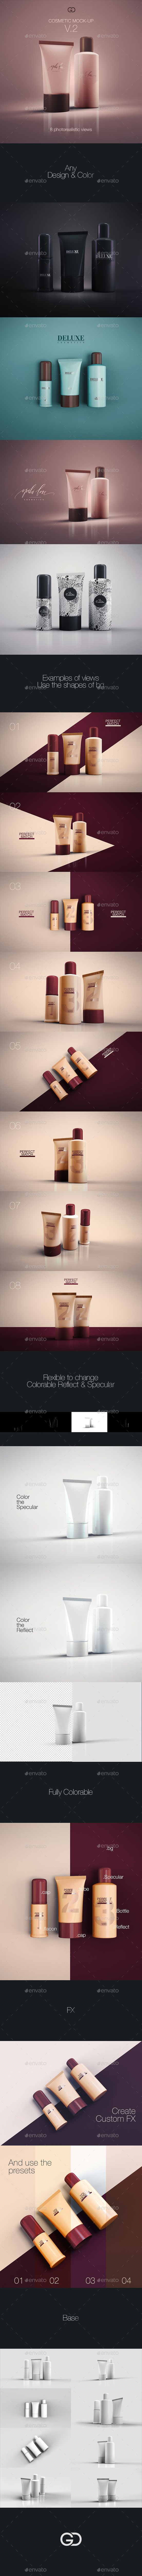 Cosmetic Mock-up. Download here: http://graphicriver.net/item/cosmetic-mockup-2/15488662?ref=ksioks